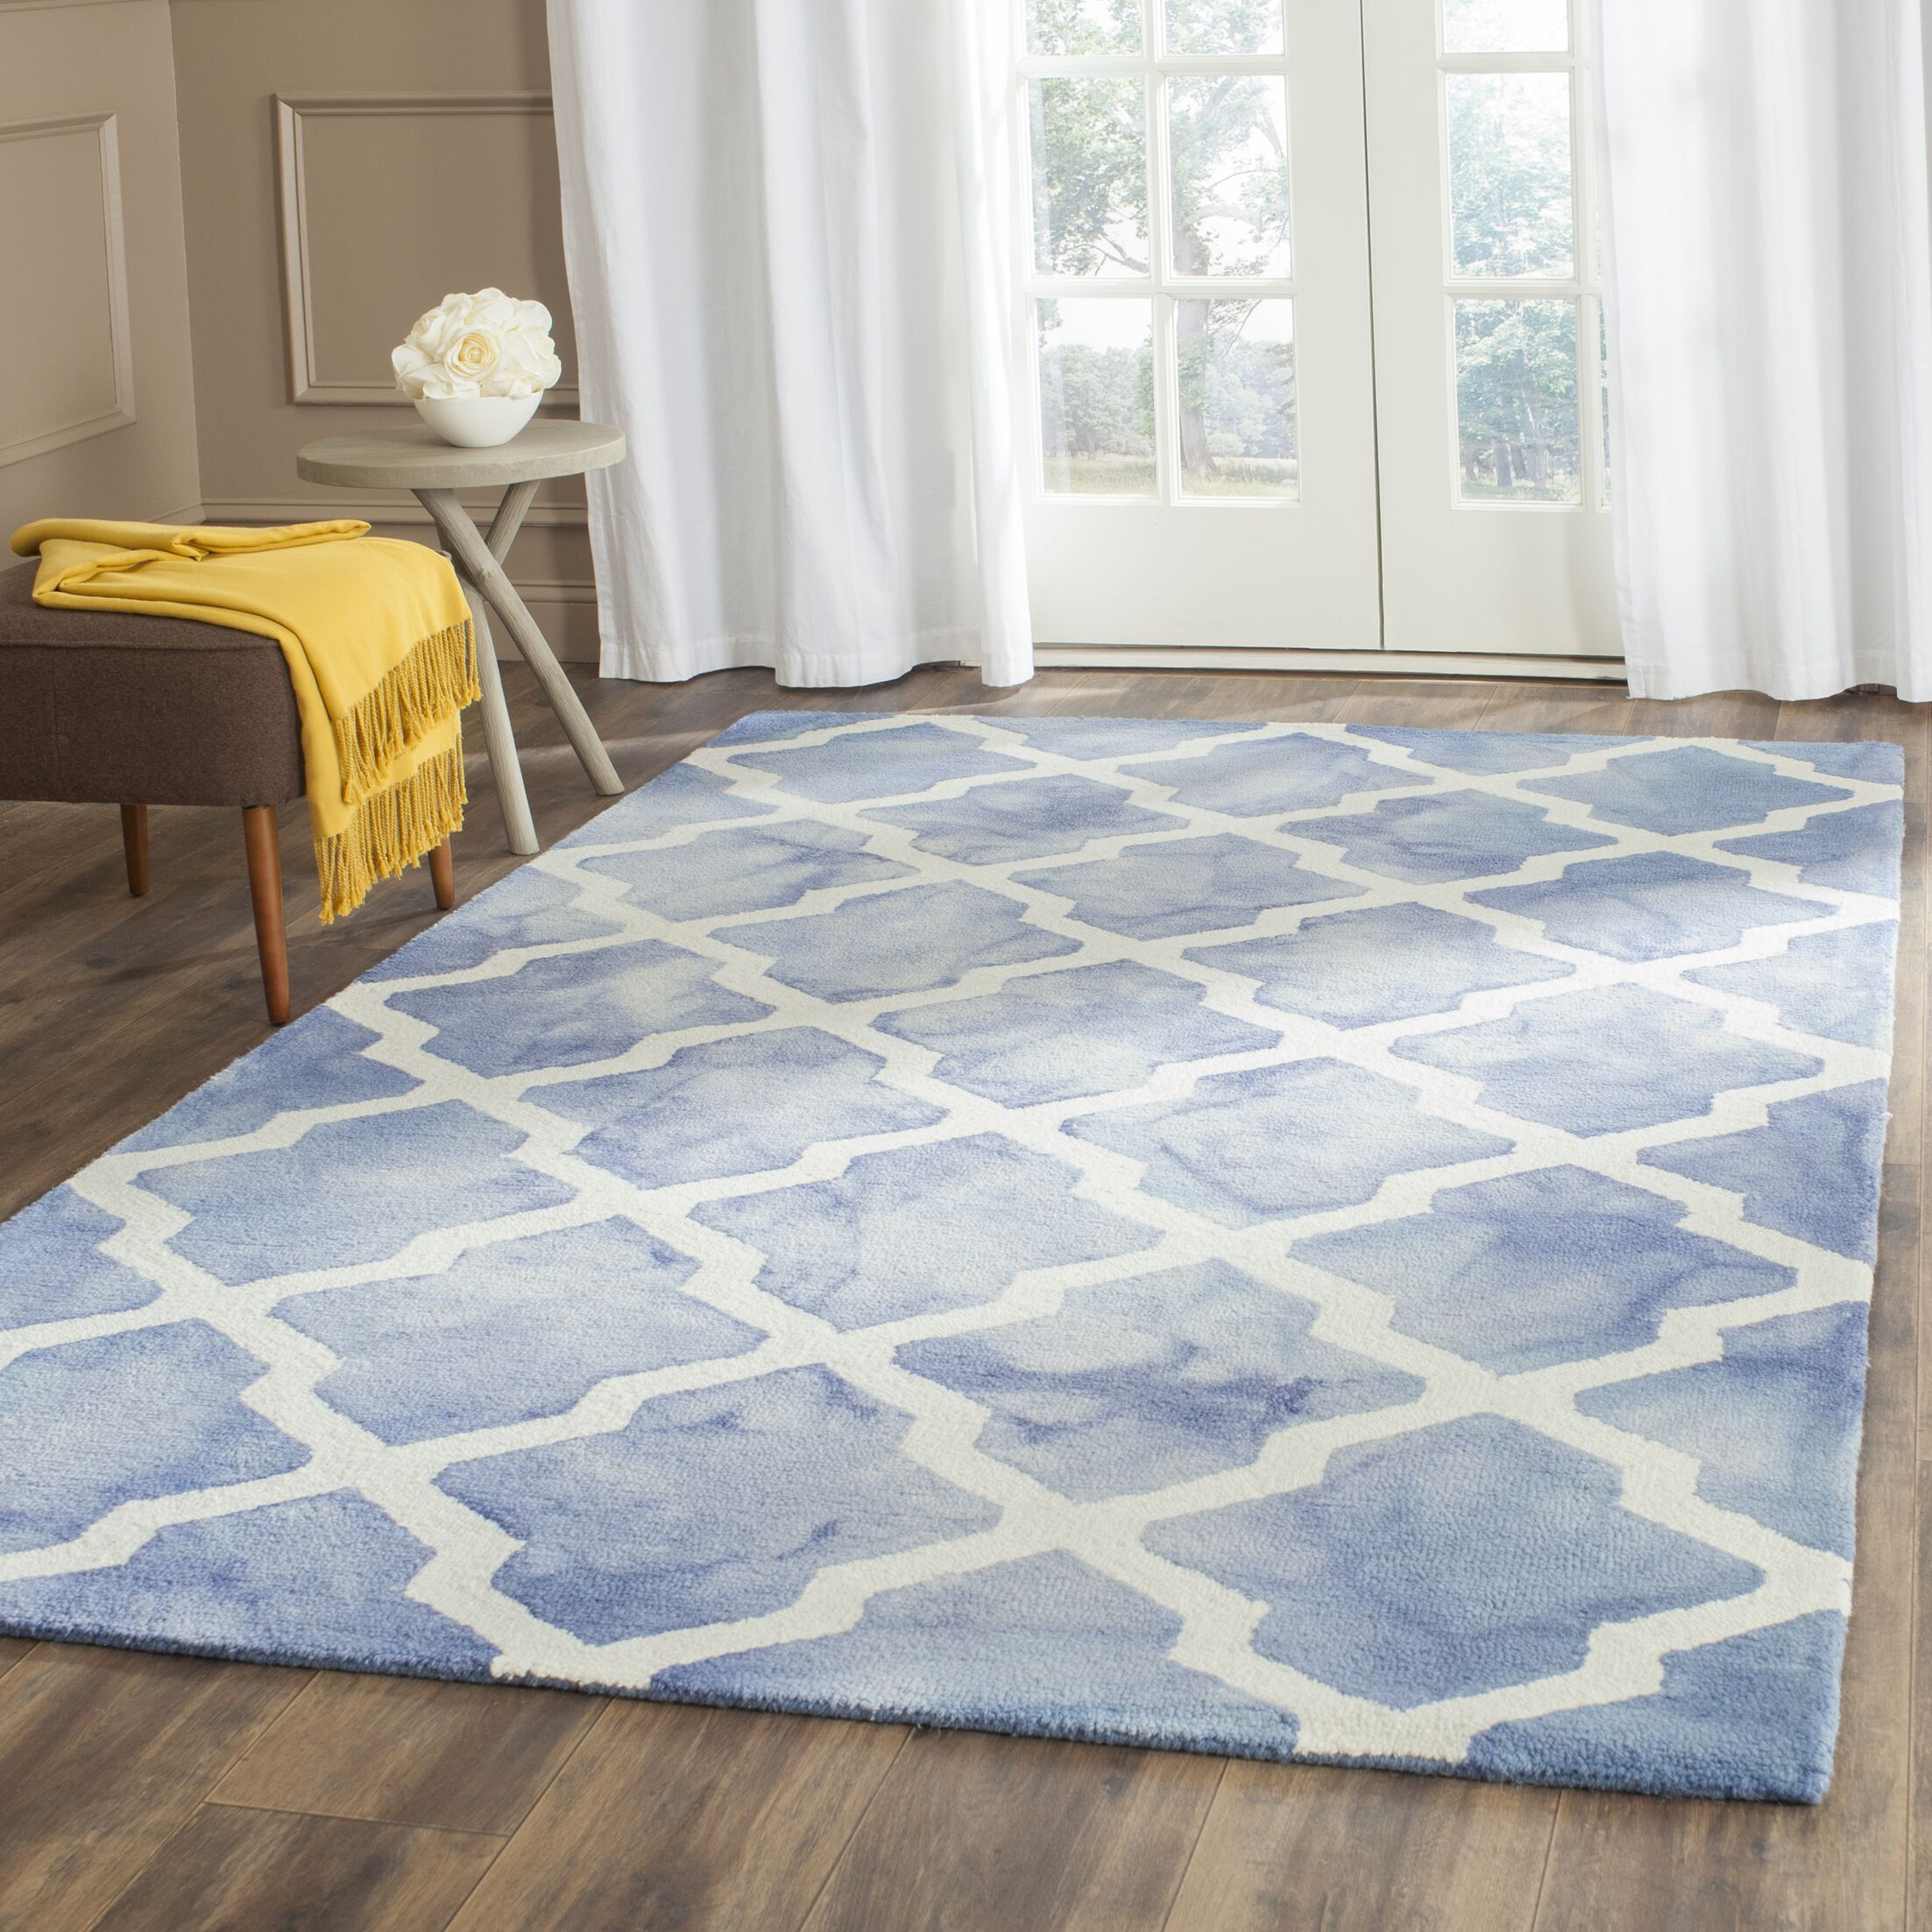 Hand-Tufted Blue/Ivory Area Rug Rug Size: Runner 2'3